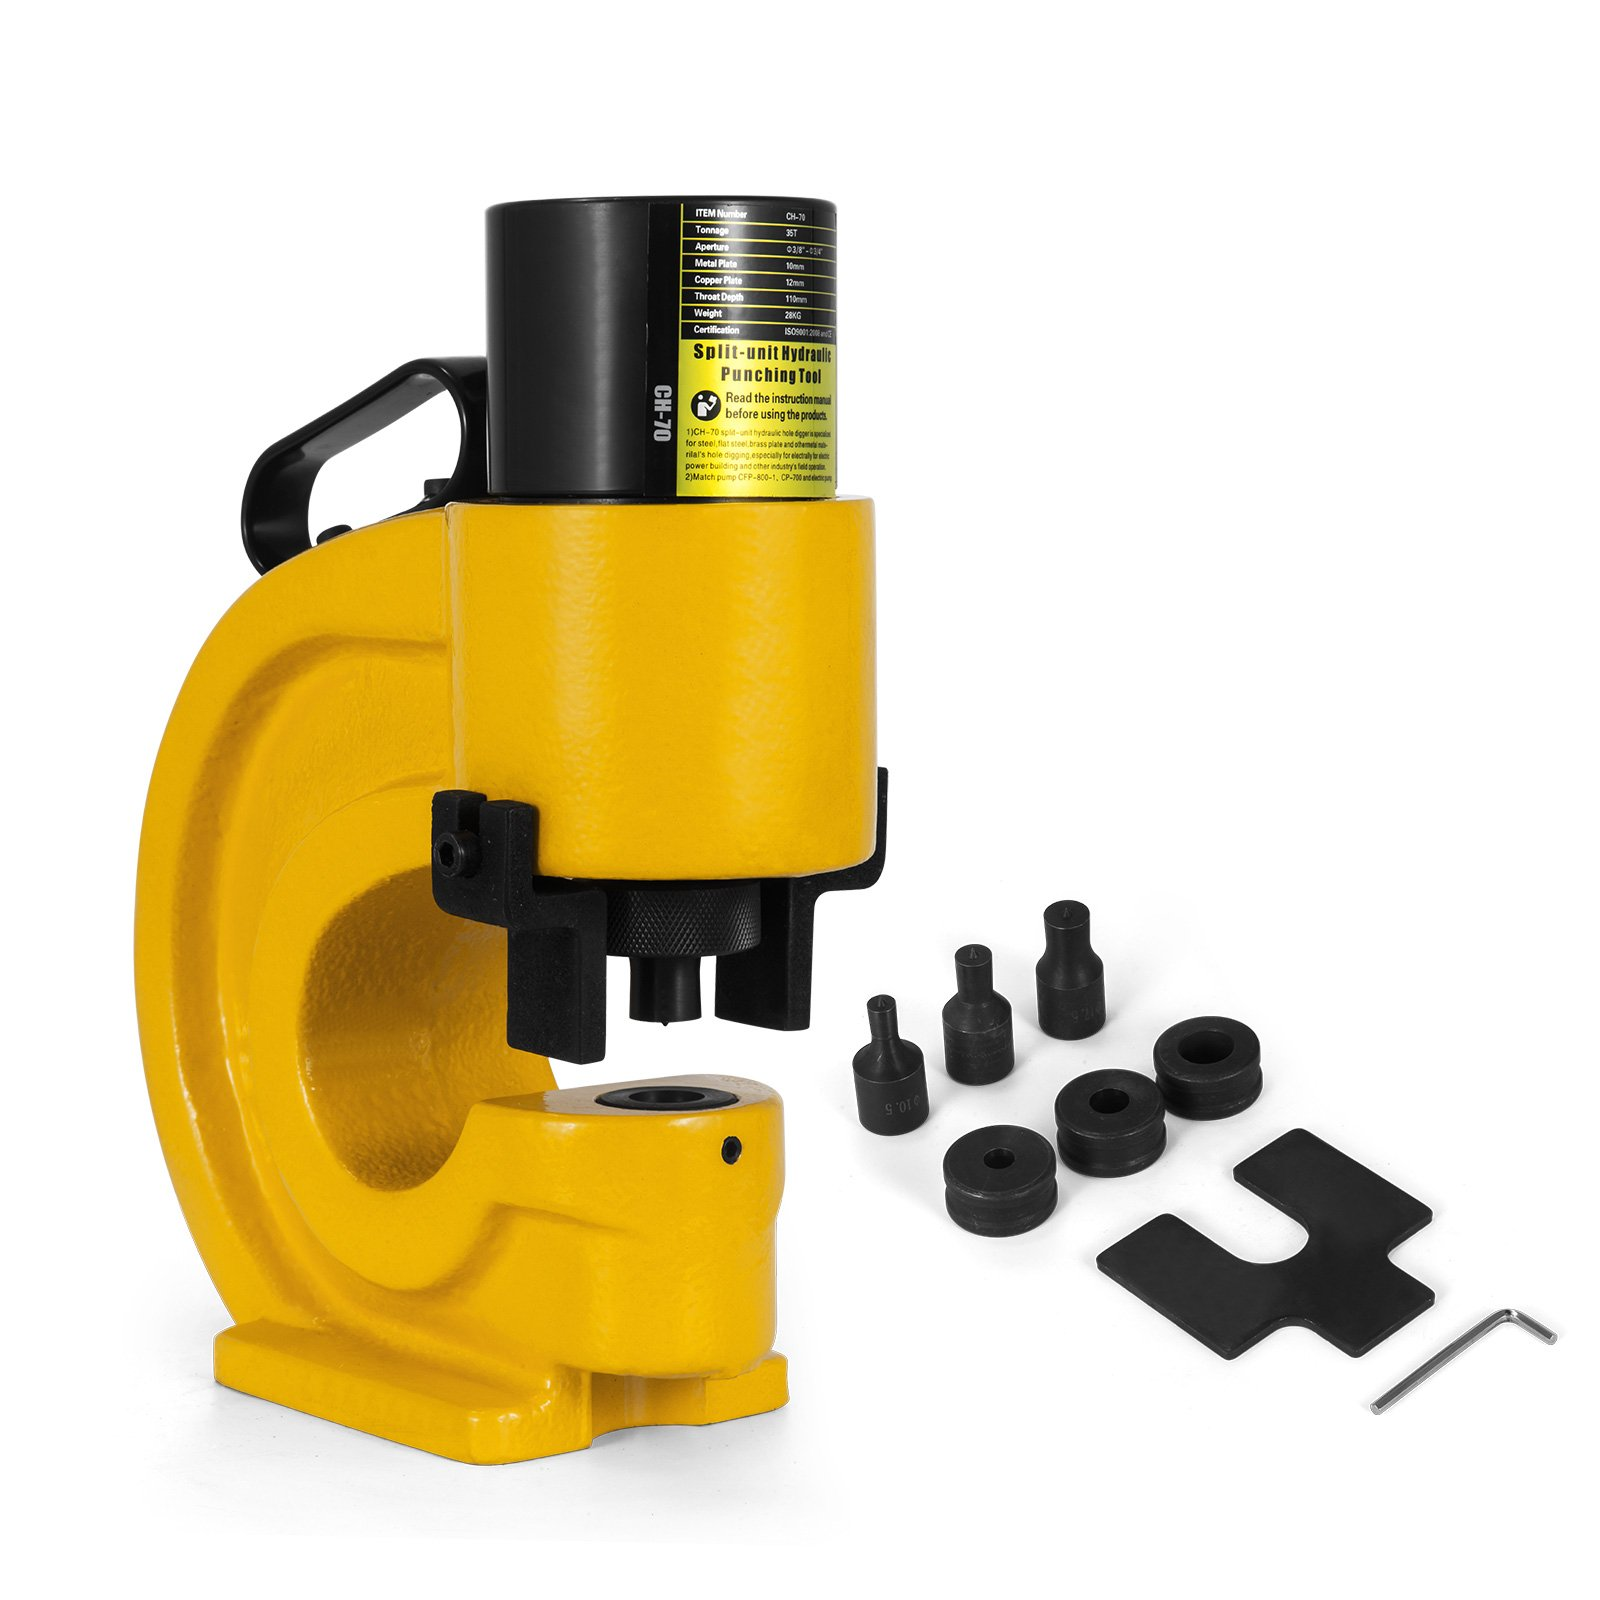 Happybuy CH-70 Hydraulic Hole Punching Tool 35T Hole Digger Force Puncher Smooth Hole Puncher For Iron Plate Copper Bar Aluminum Stainless Steel